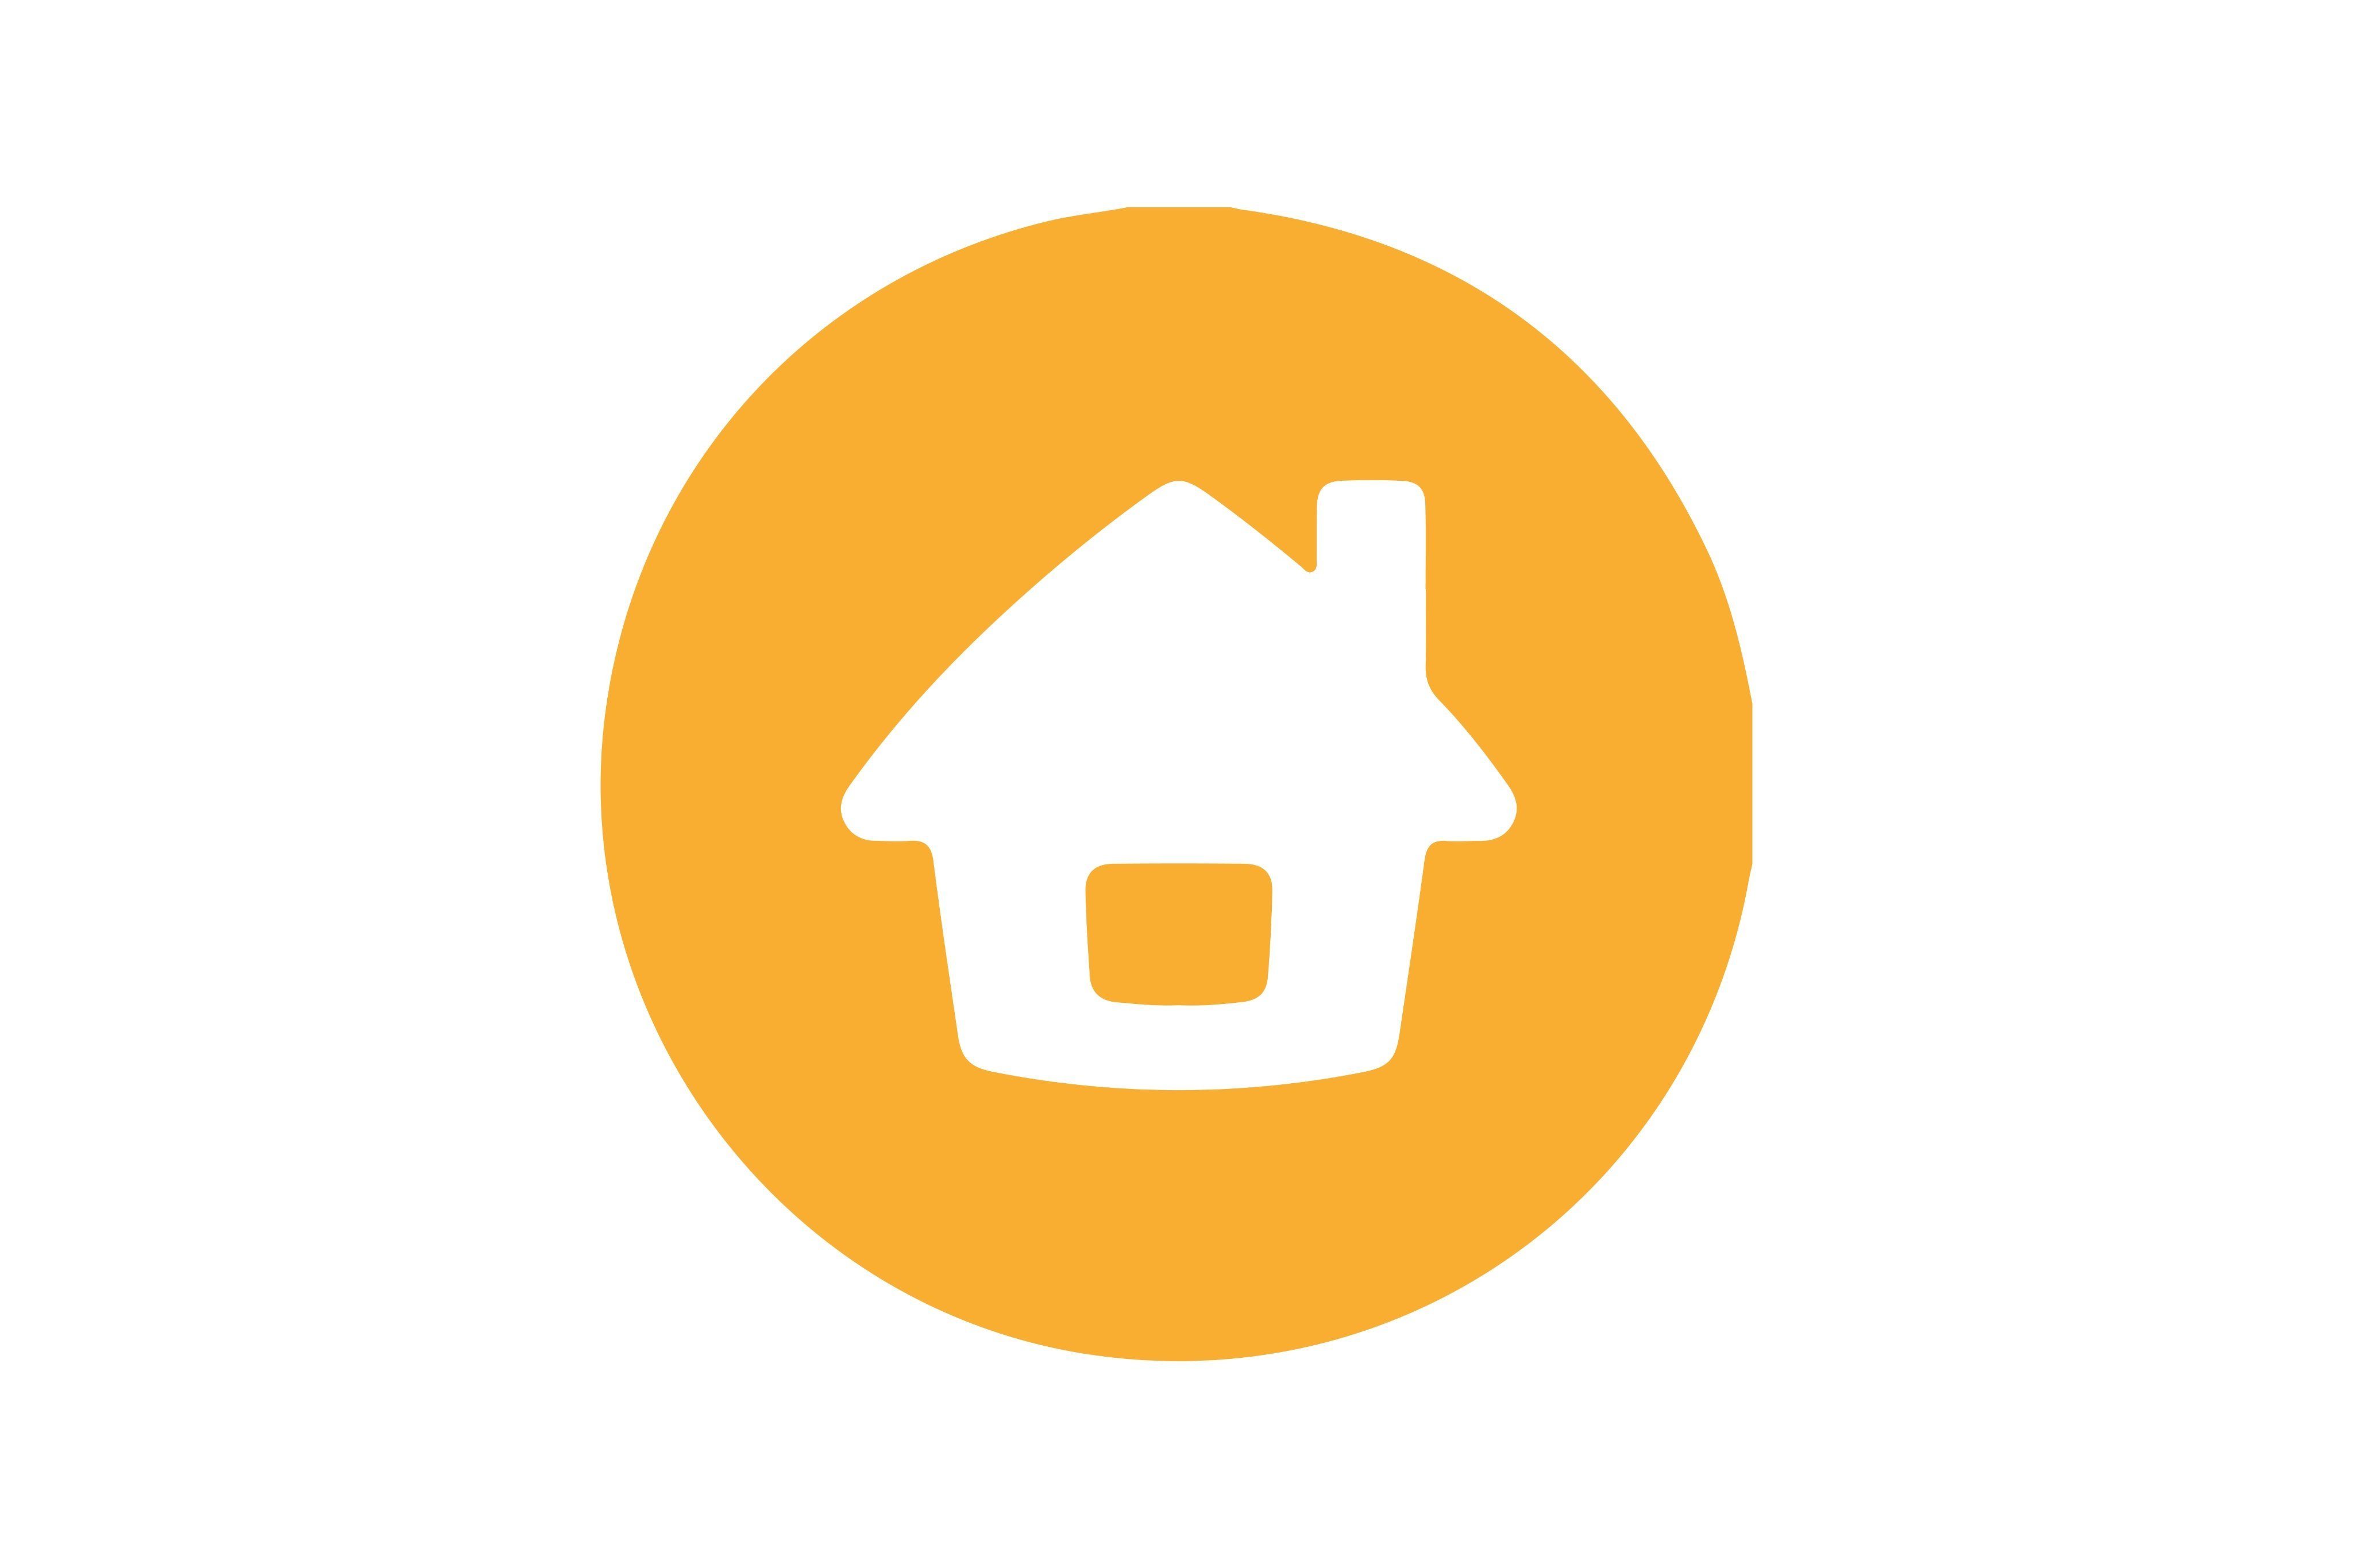 HOME shared ownership logo